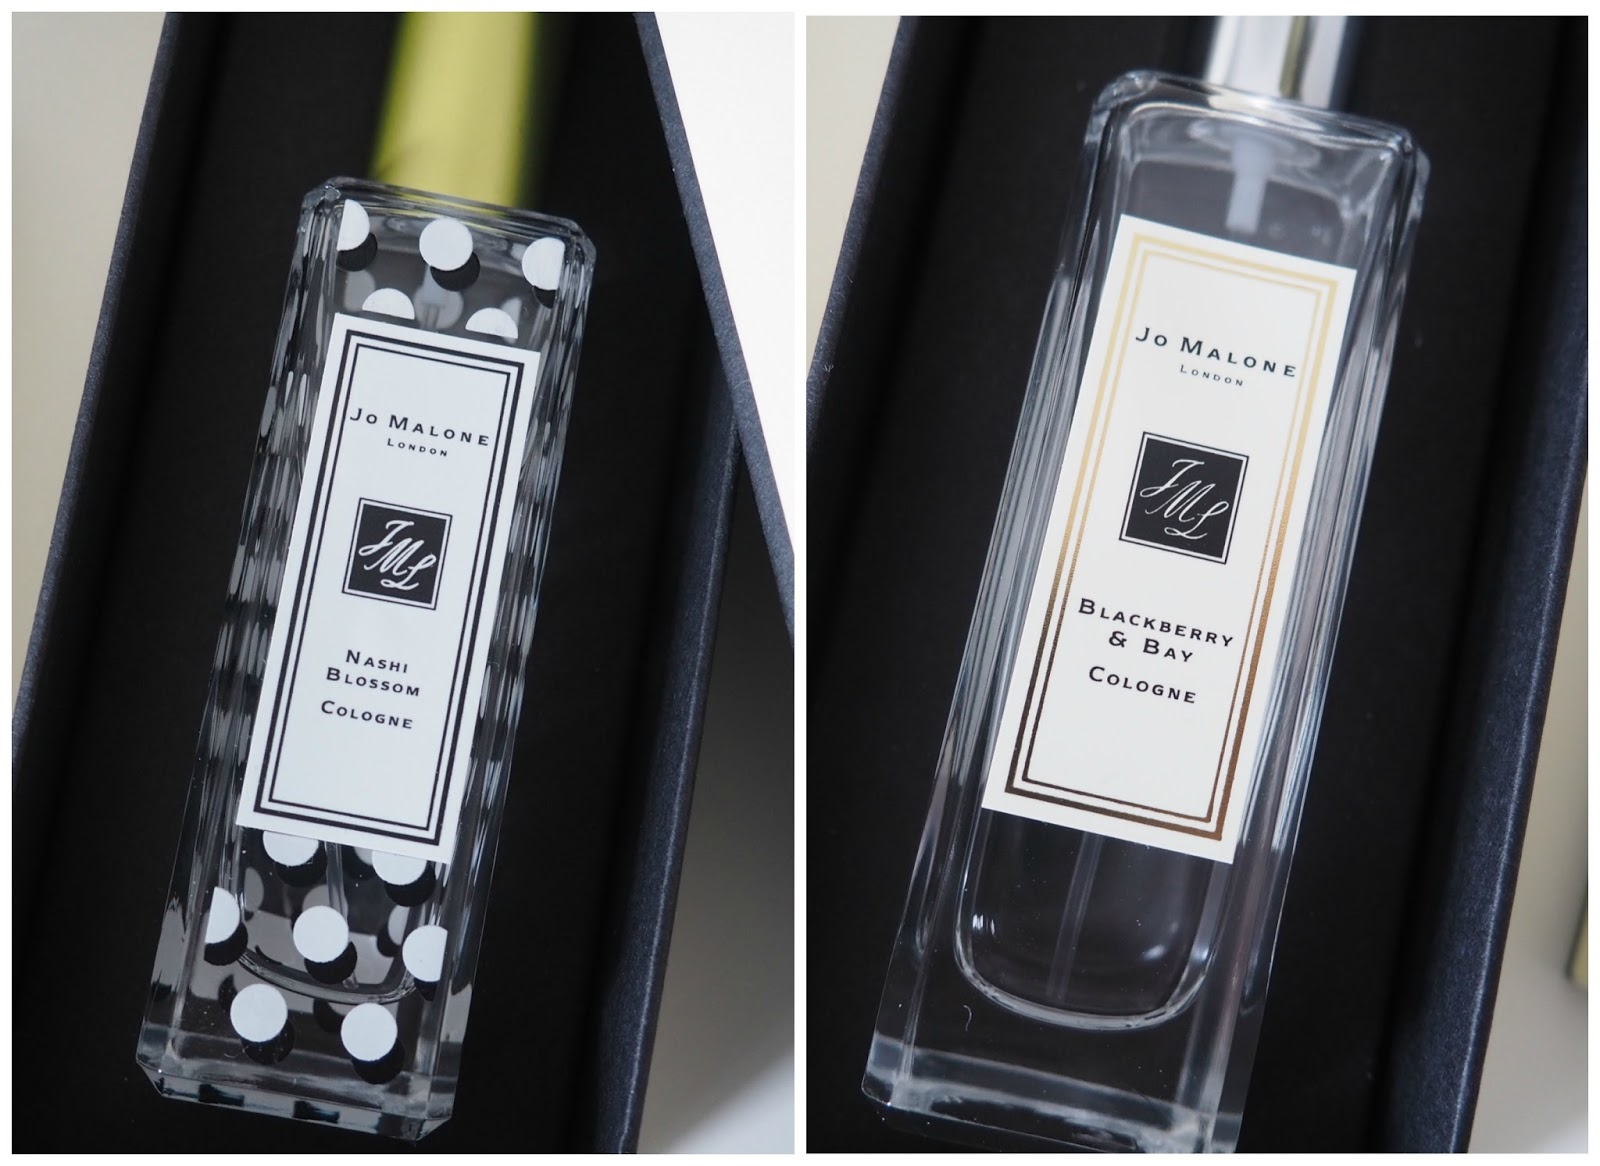 Jo Malone cologne review Nashi blossom blackberry & Bay perfume review